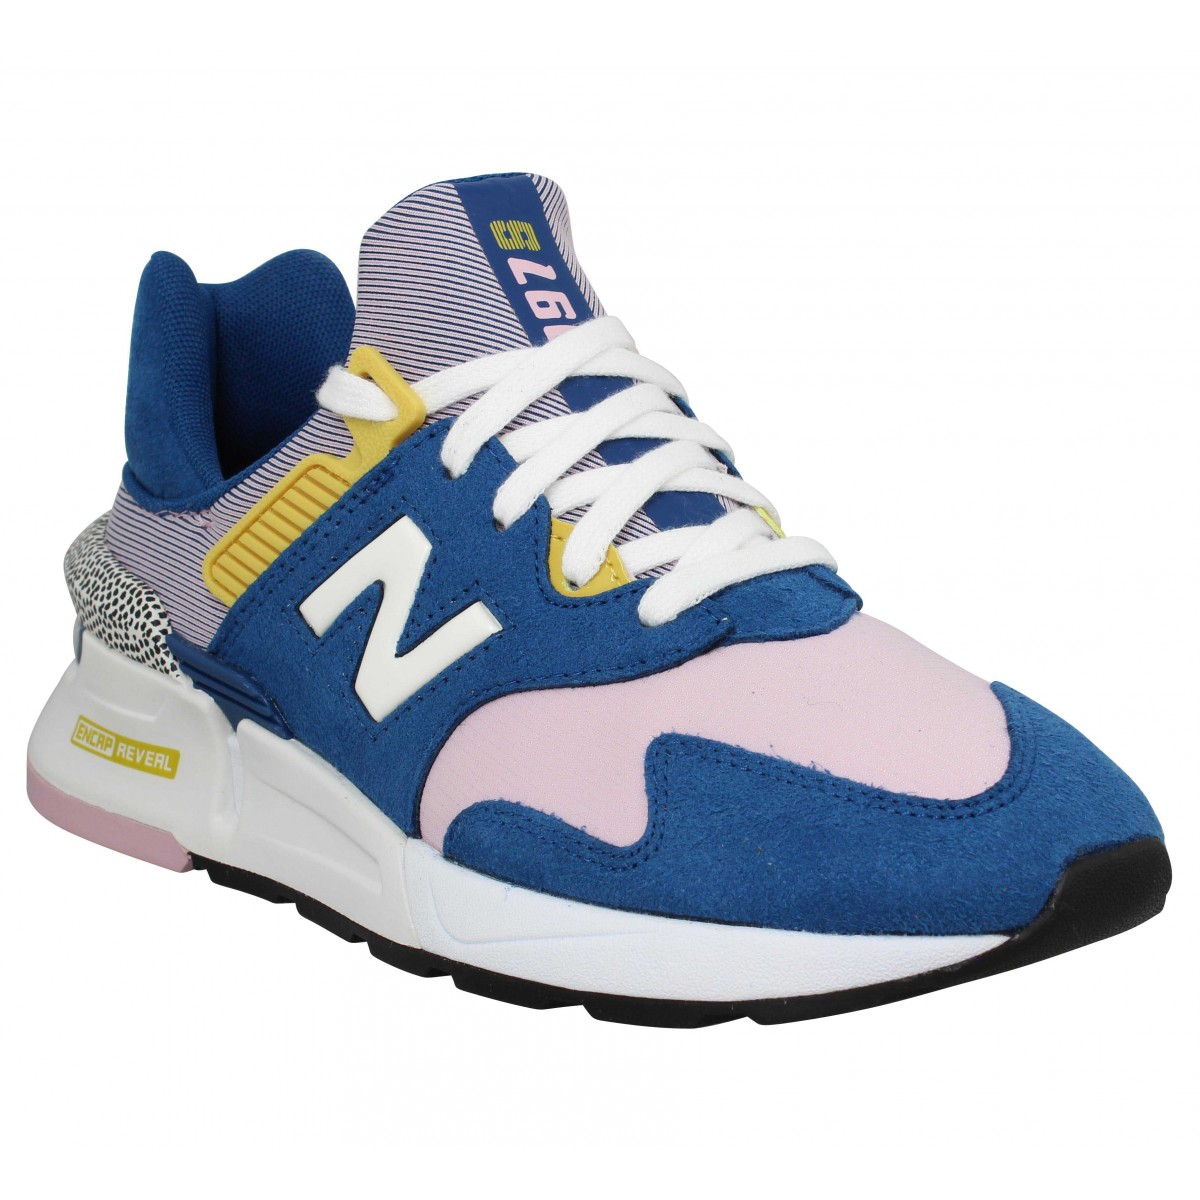 New Balance Marque Ws997 Toile...